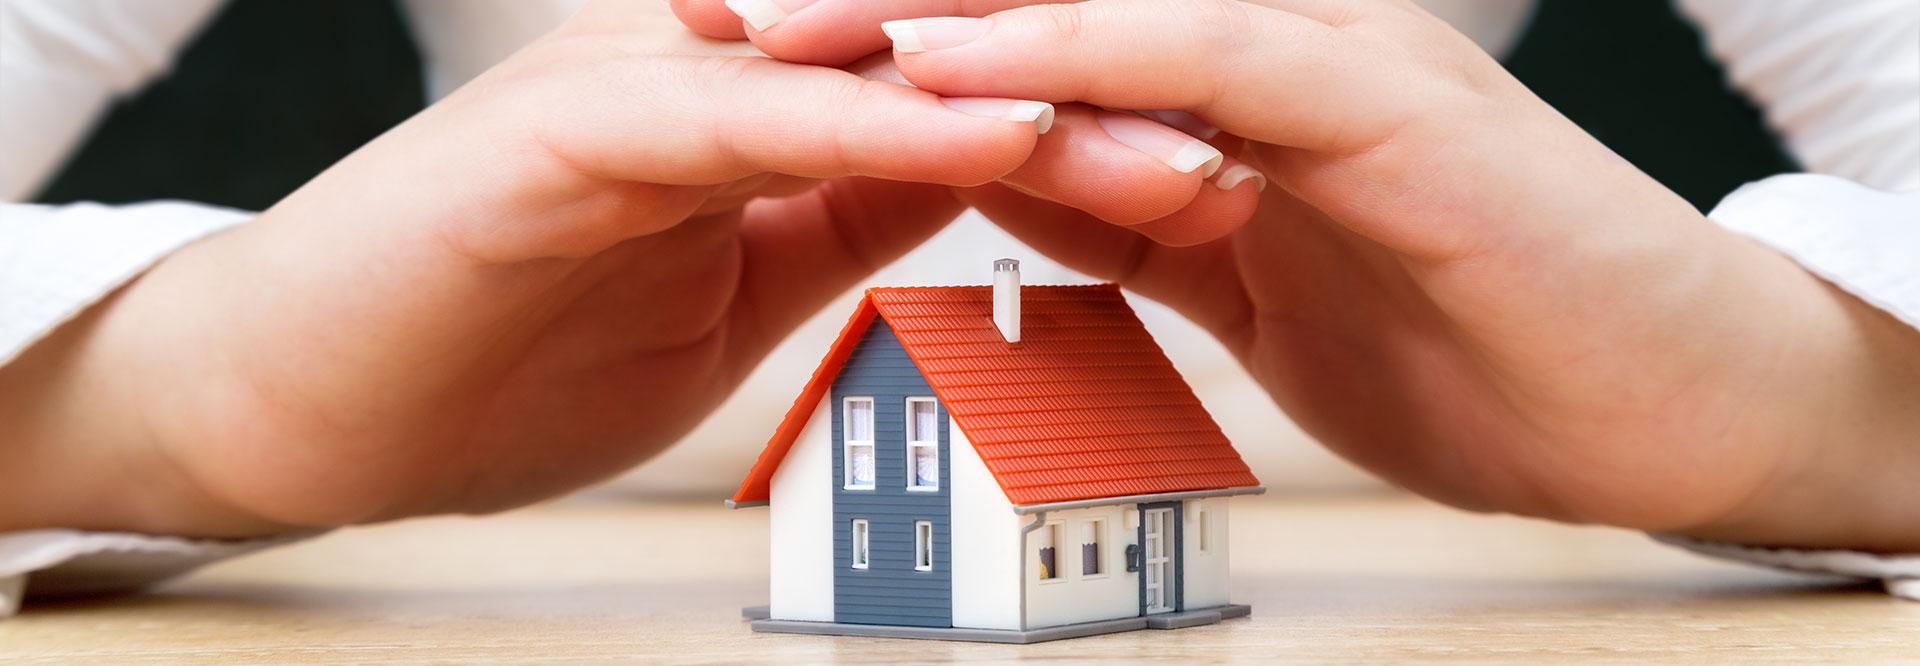 Finding insurance for your new home